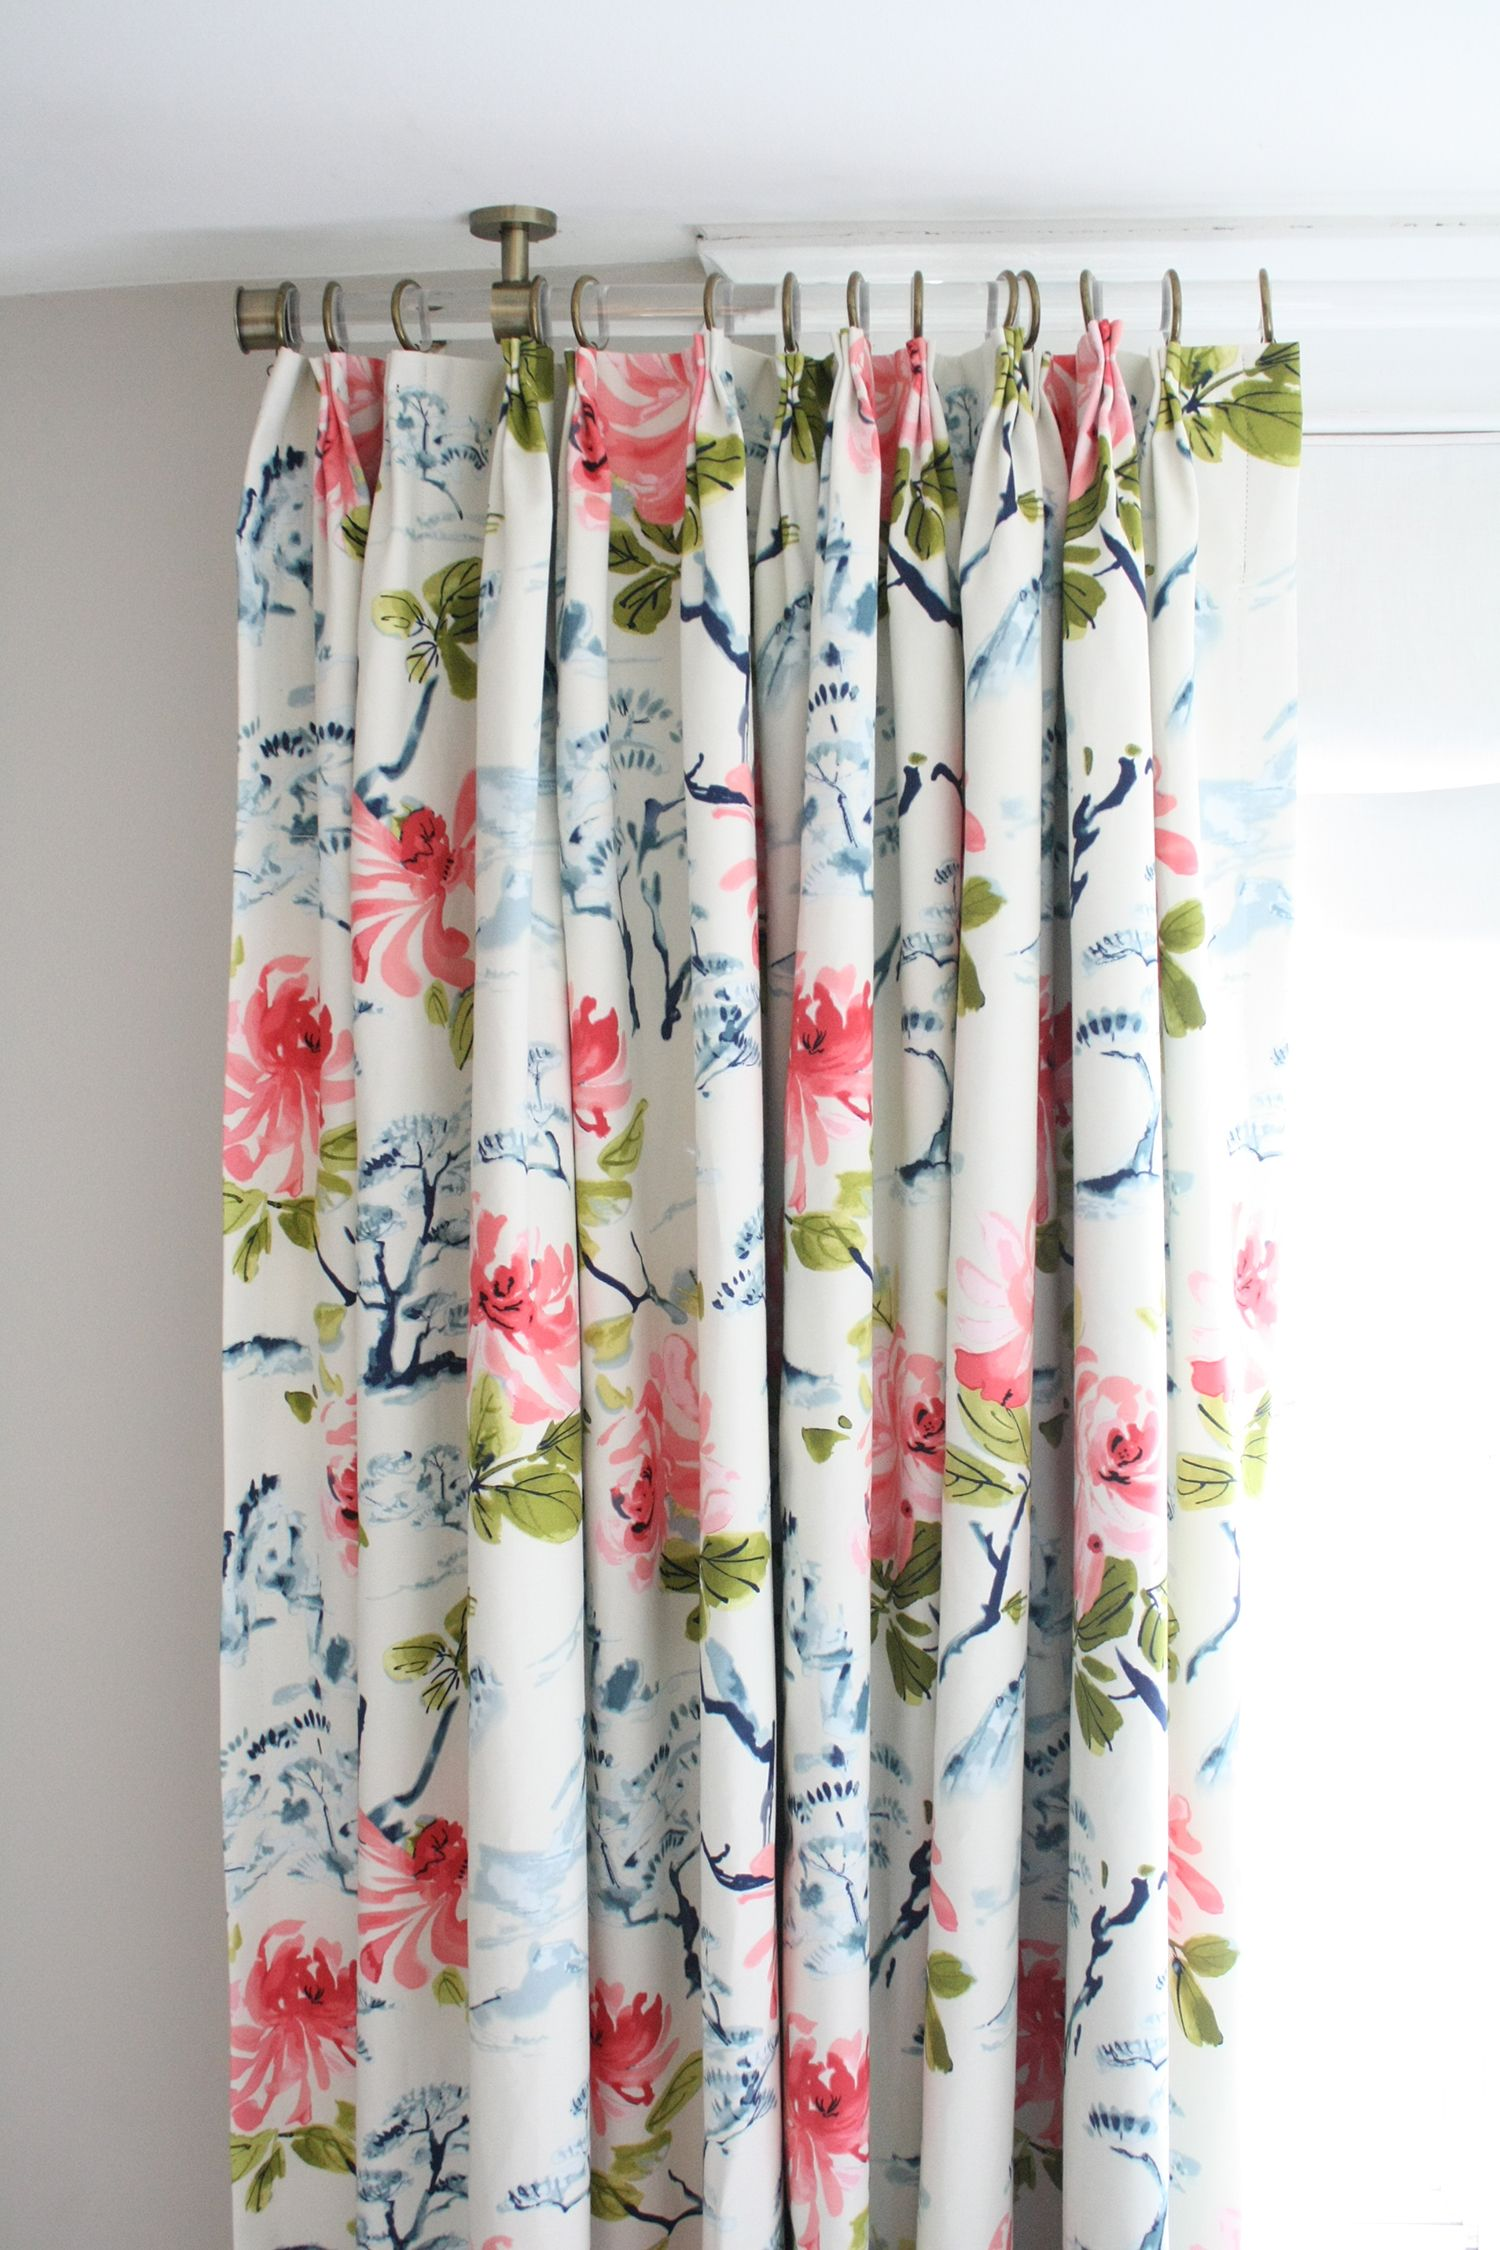 Eastern Charm Hibiscus In 2019 Curtains Bedroom Drapes Floral Curtains Nursery Curtains